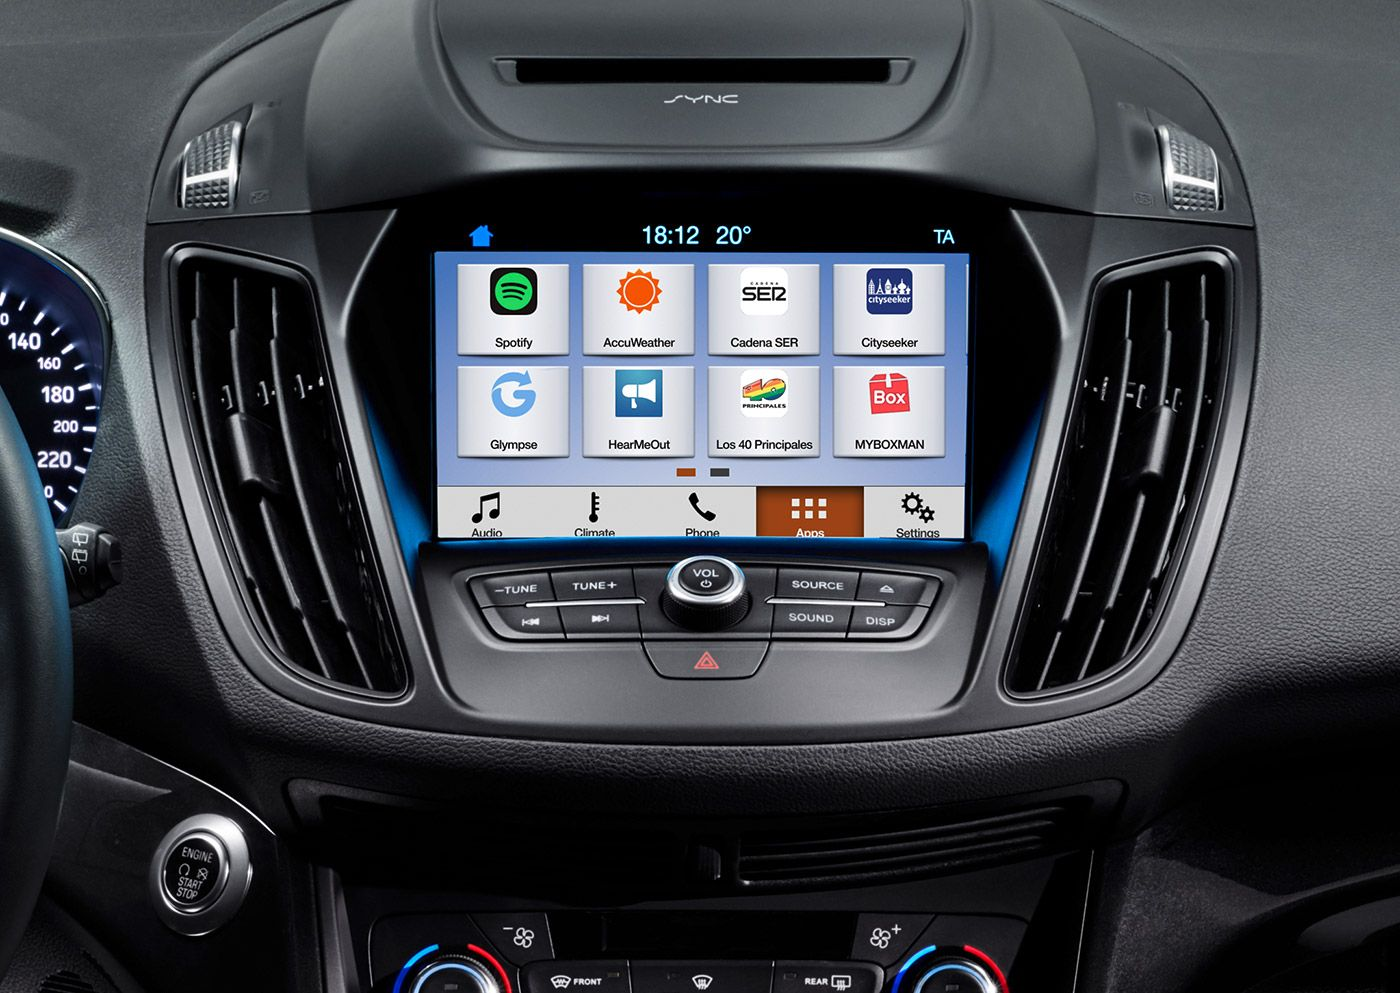 Ford Sync 3 Is Also Heading To Europe This Summer Ford Is Apparently Launching The Sync 3 Connected Car System This Summer Not Only In The U Voiture Ford Auto